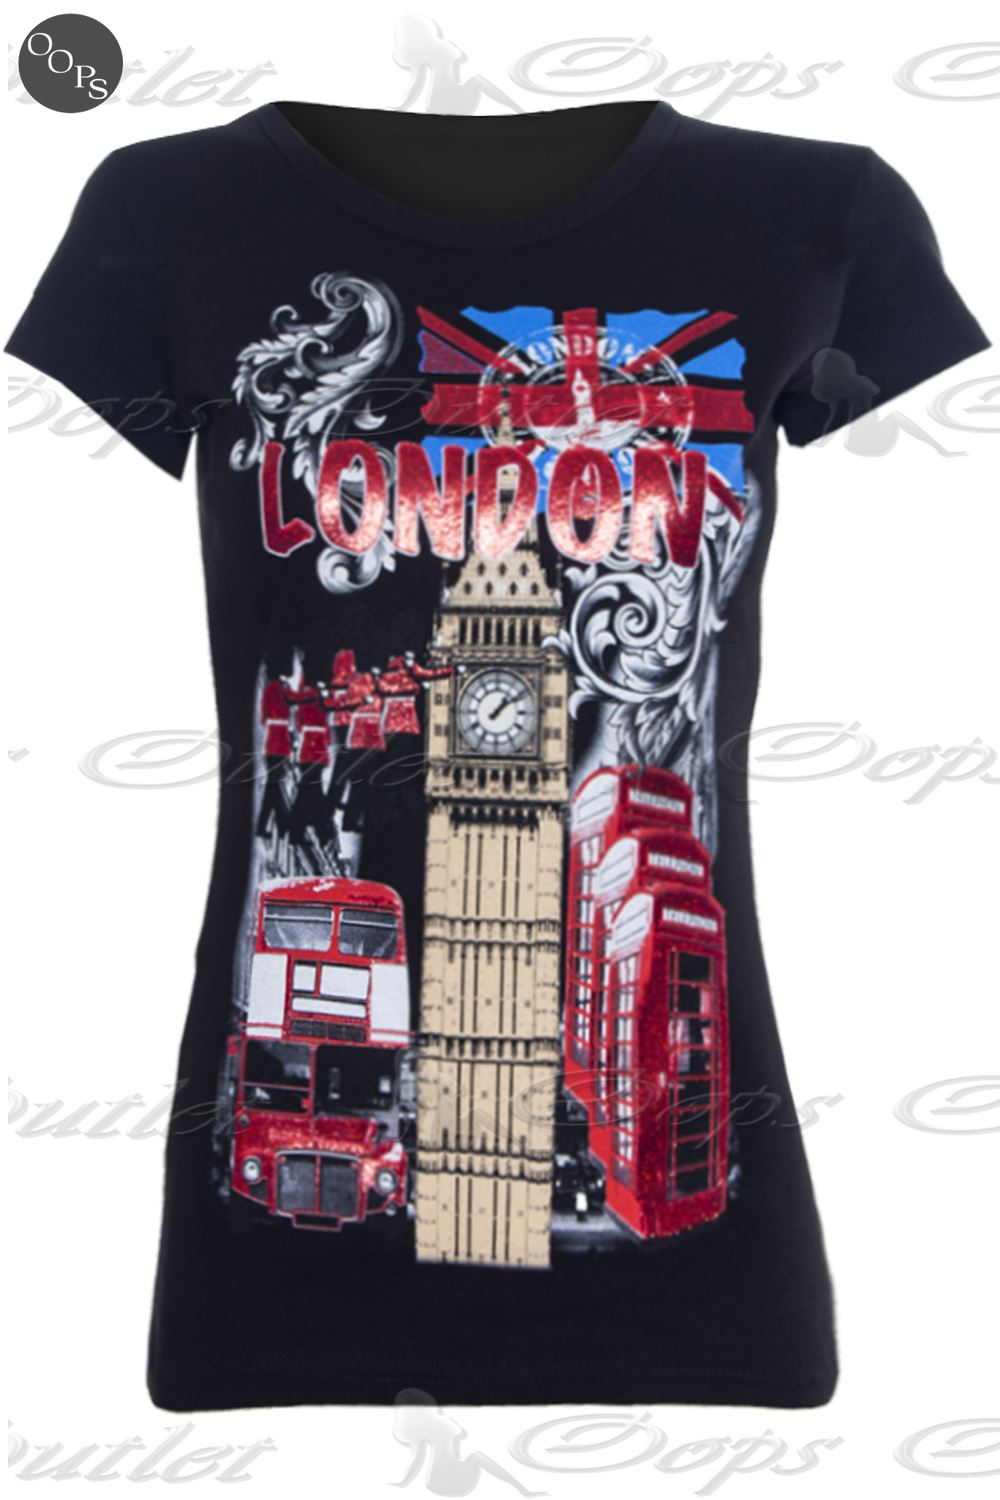 High quality London inspired Women's T-Shirts & Tops by independent artists and designers from around the makeshop-mdrcky9h.ga orders are custom made and most ship worldwide within 24 hours.